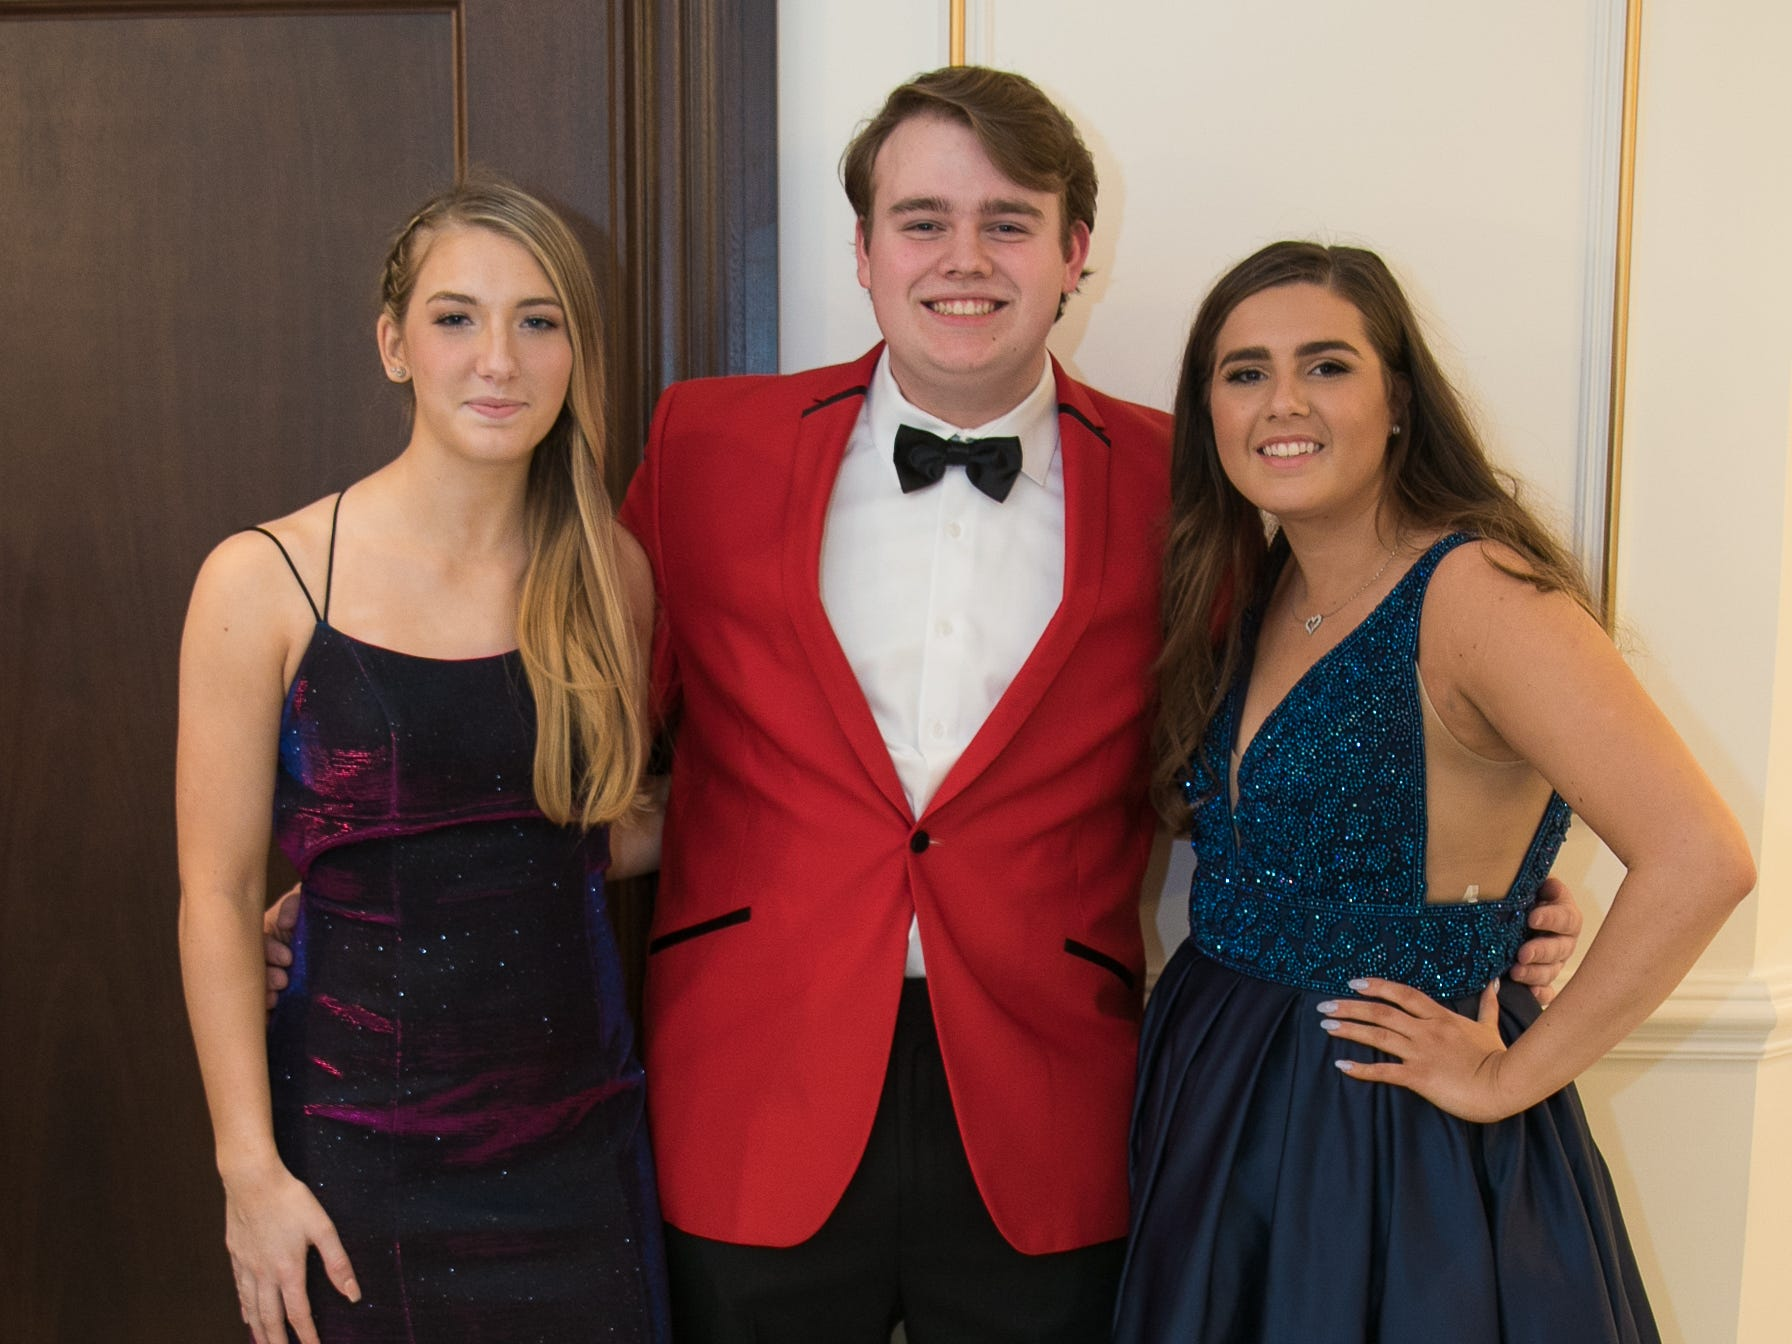 The Indian Hills High School Class of 2019 held their Senior Fashion Show at Macaluso's in Hawthorne. 03/21/2019